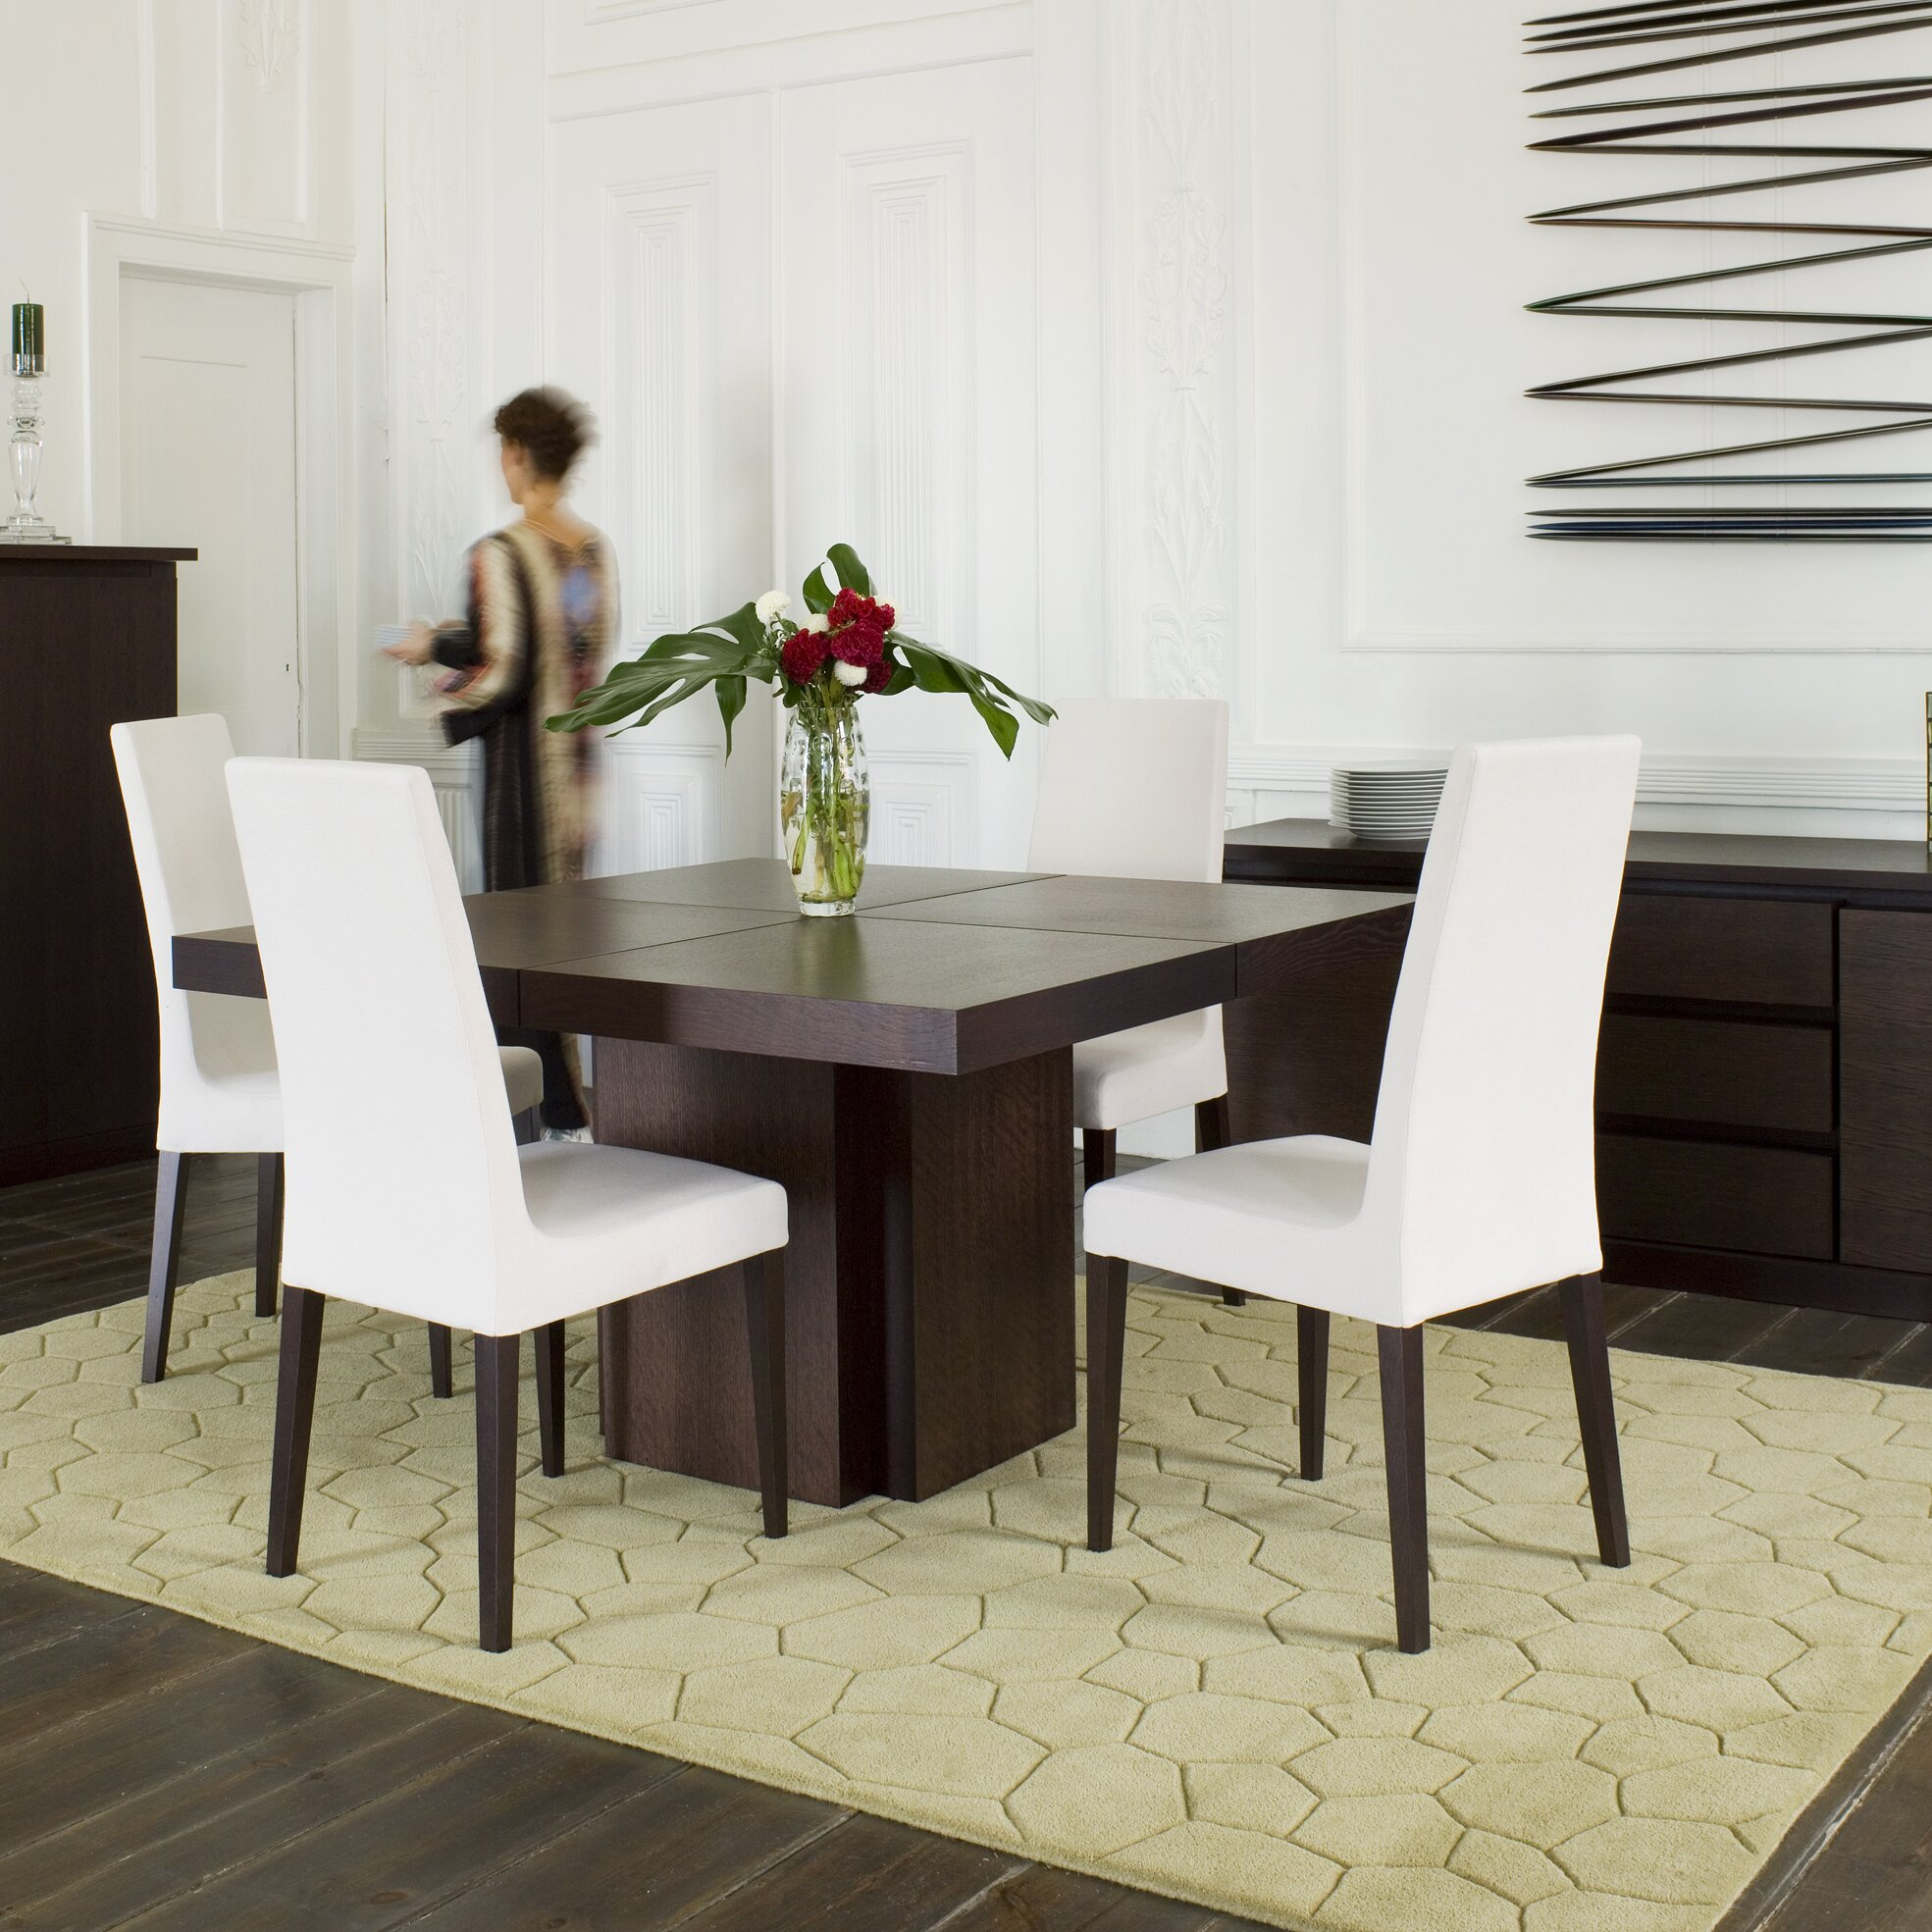 Home etc canterson dining table reviews wayfair uk for Furniture etc reviews